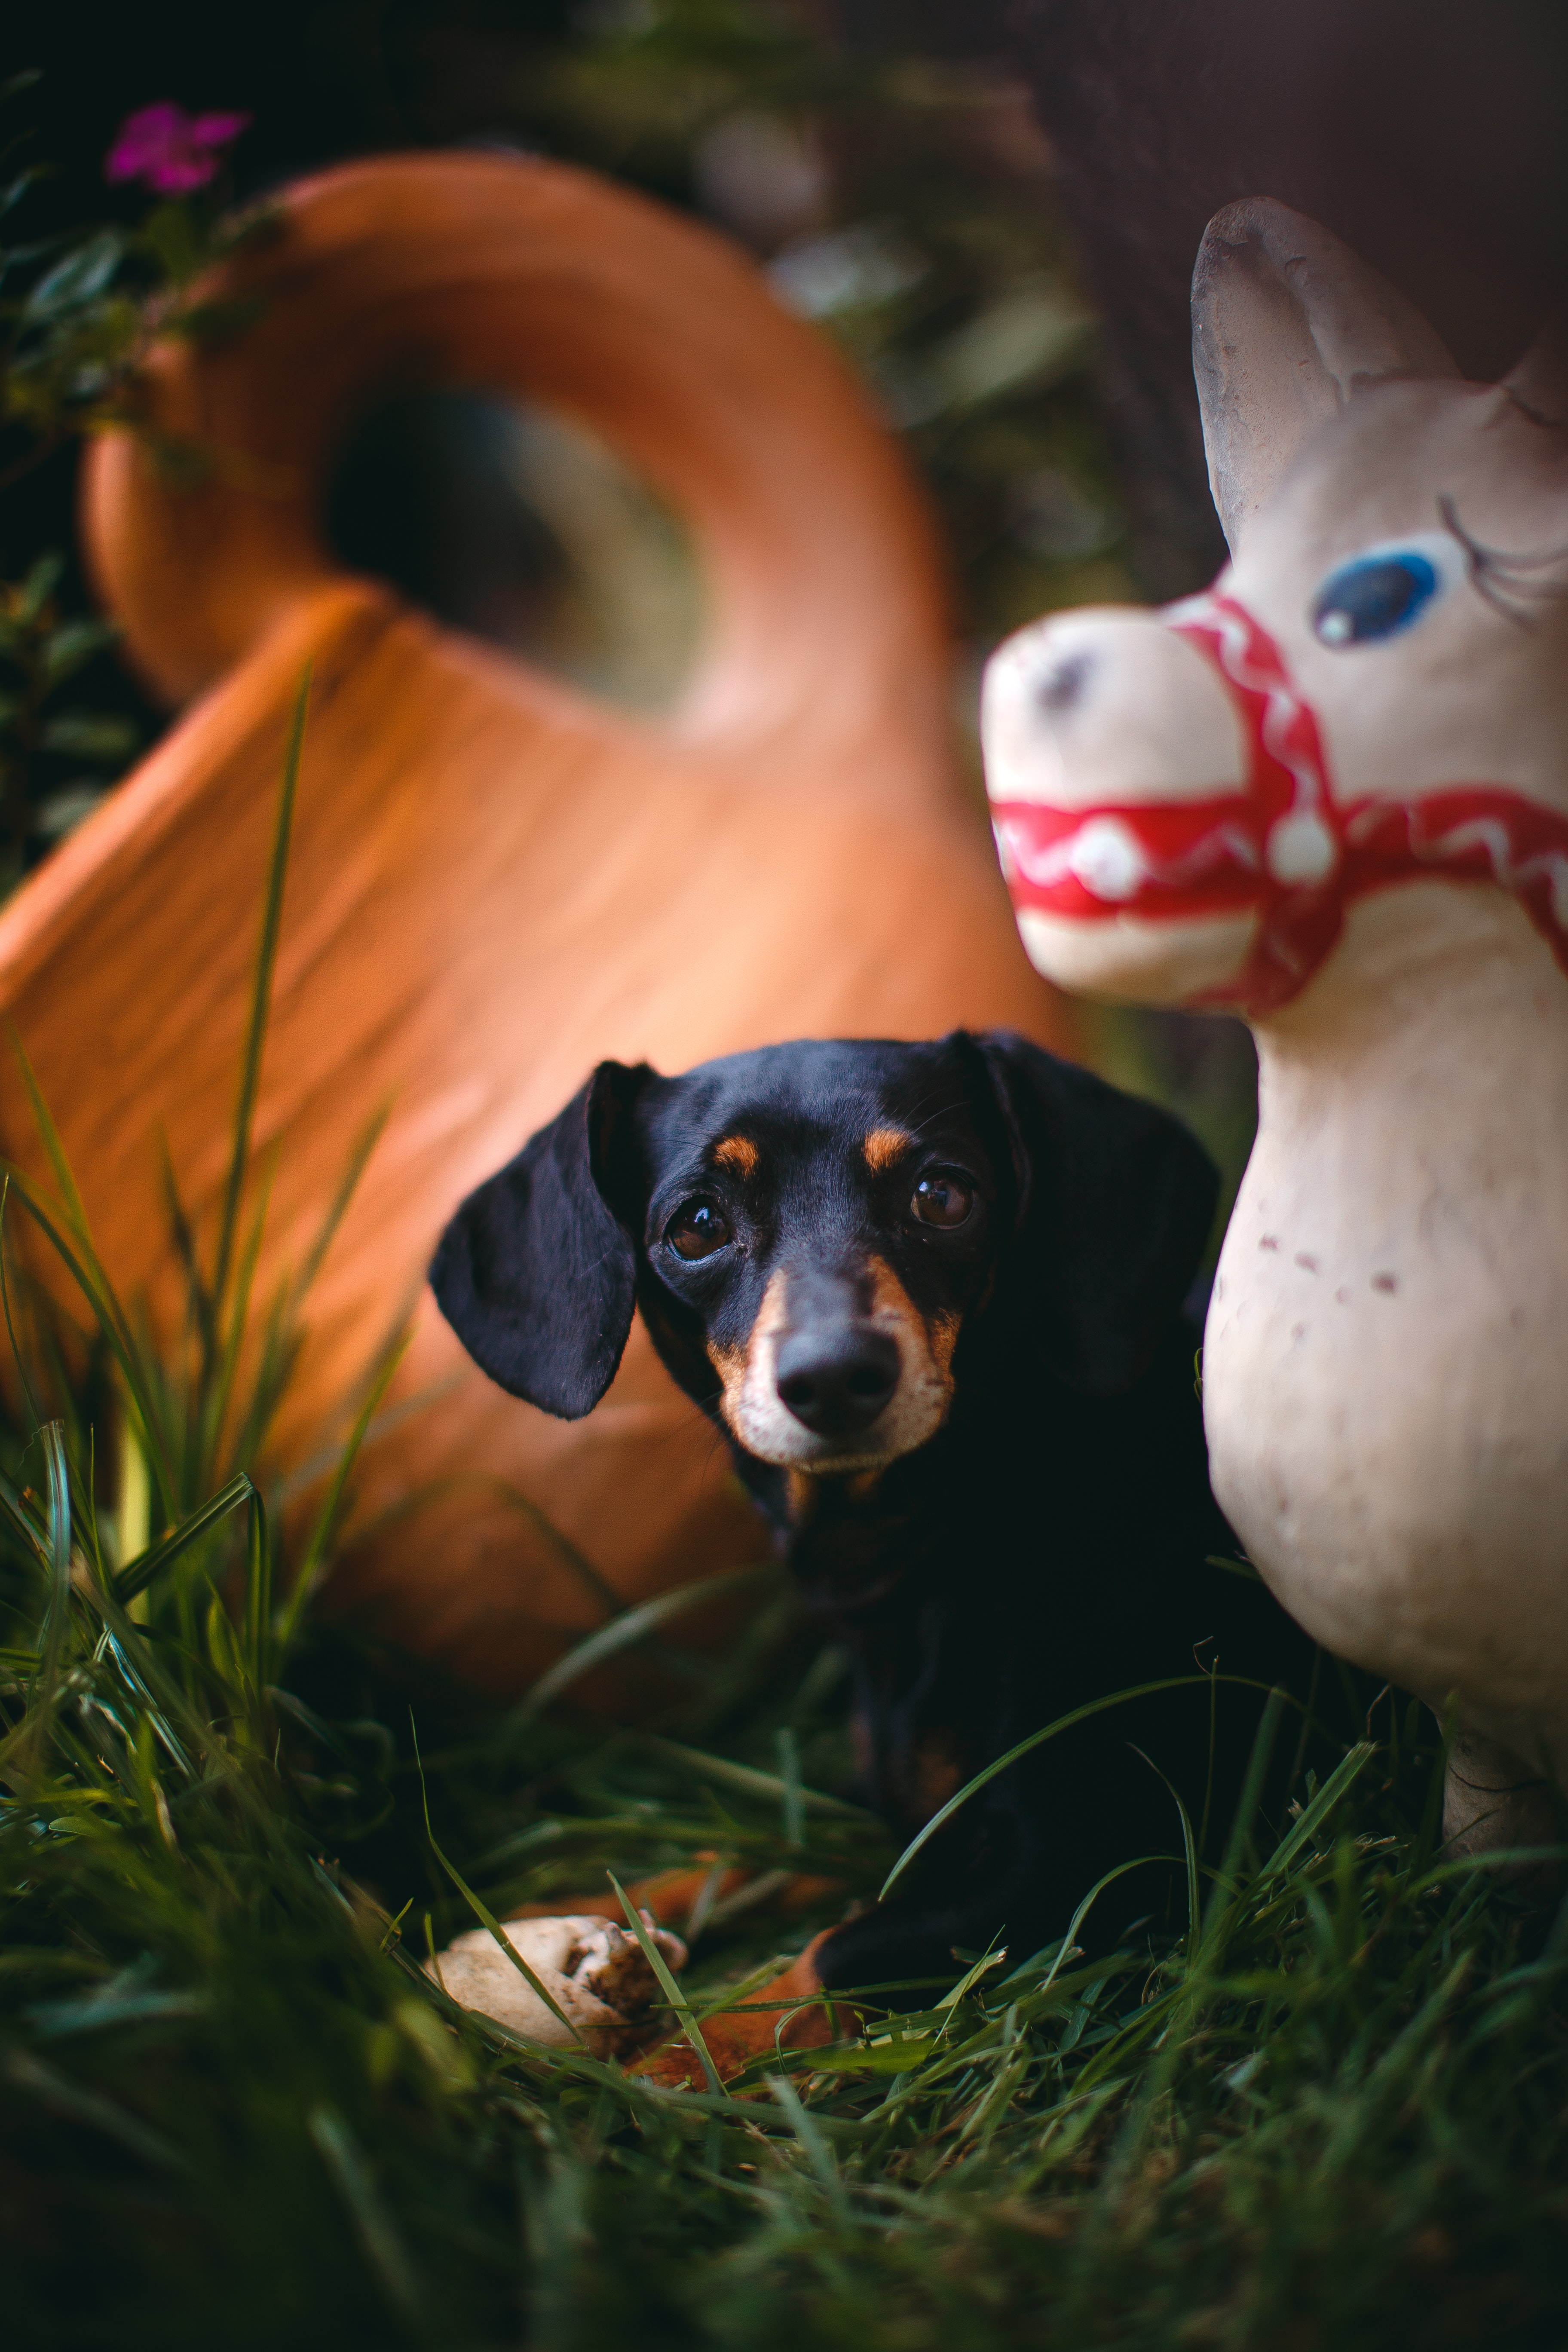 81129 download wallpaper Animals, Dachshund, Puppy, Nice, Sweetheart, Grass screensavers and pictures for free